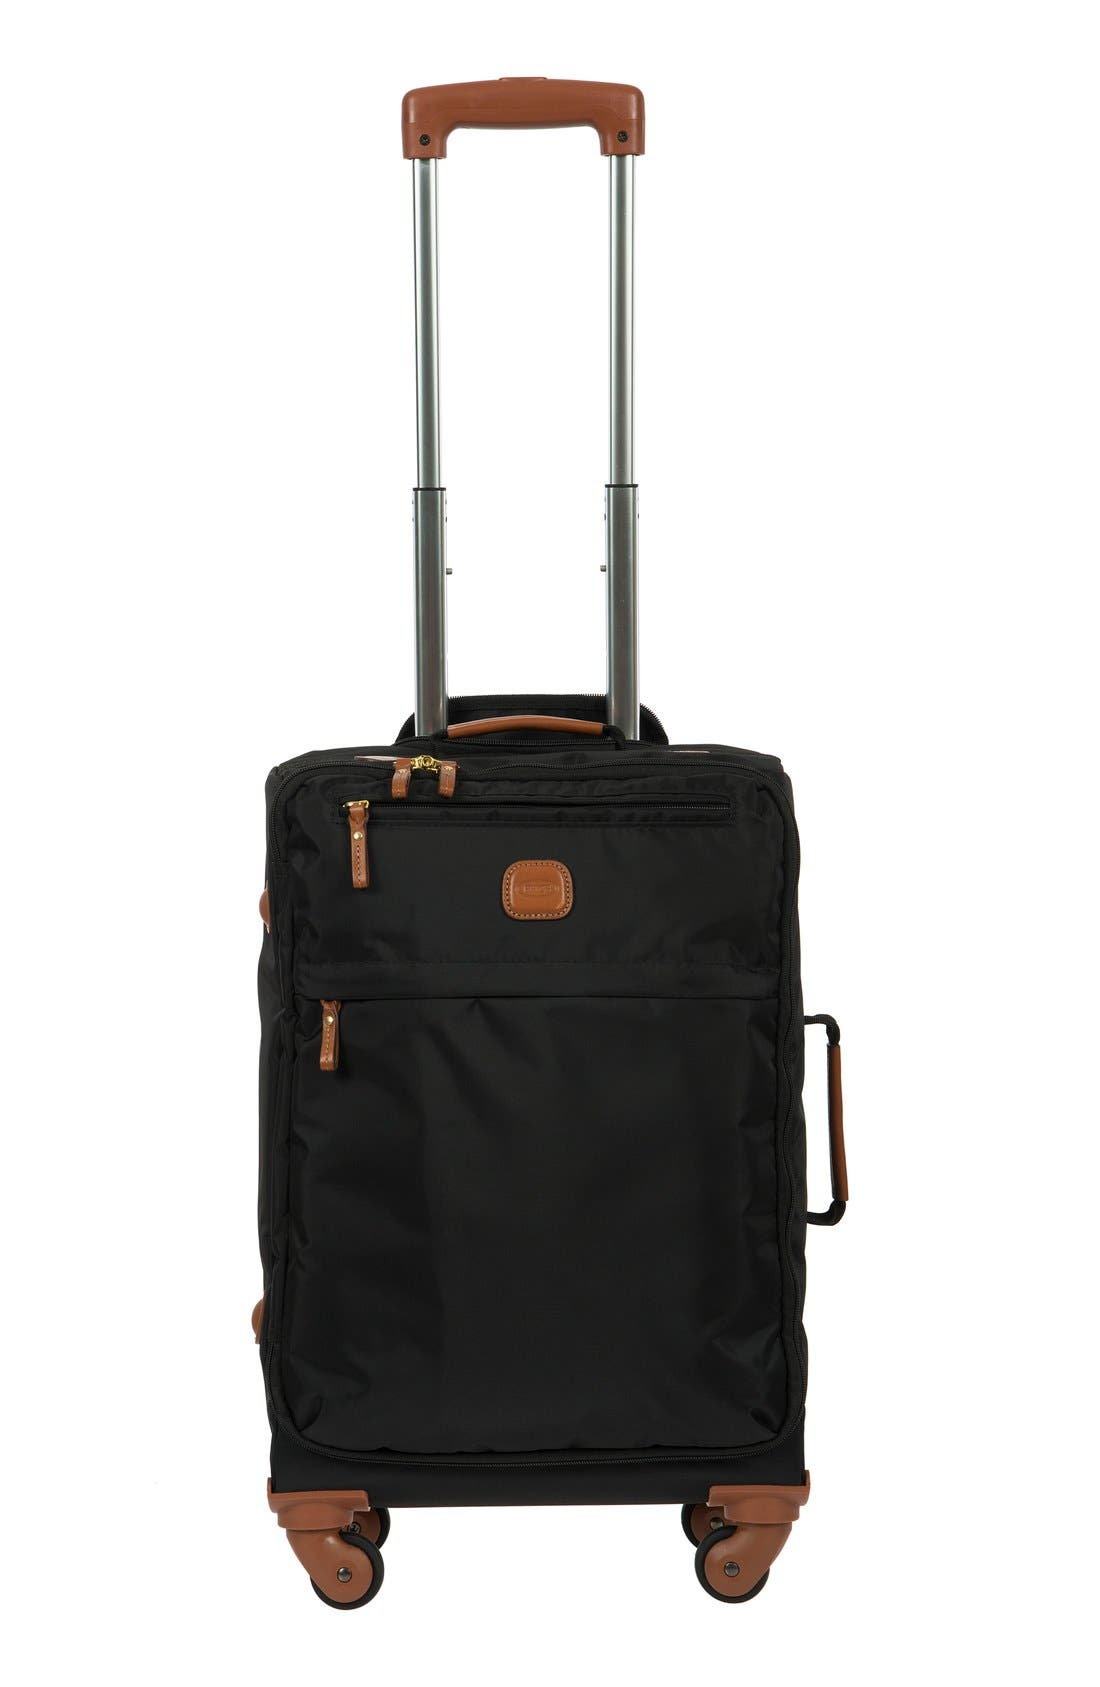 BRICS X-Bag 21 Inch Spinner Carry-On